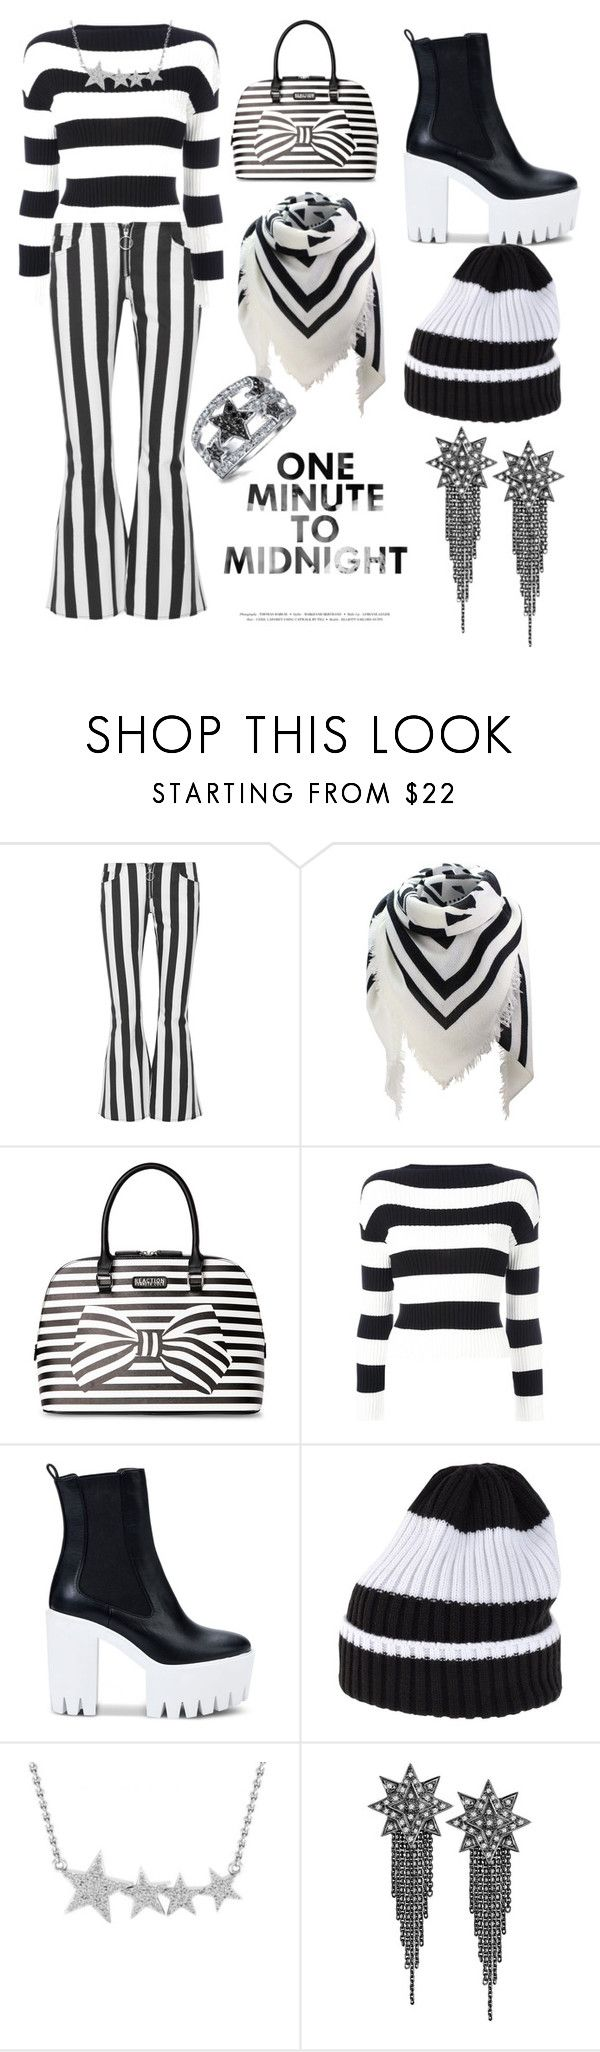 """B&W New Years"" by nerd-muffin ❤ liked on Polyvore featuring Marques'Almeida, Kenneth Cole Reaction, Boutique Moschino, STELLA McCARTNEY, White Mountaineering, Ana De Costa and Bling Jewelry"